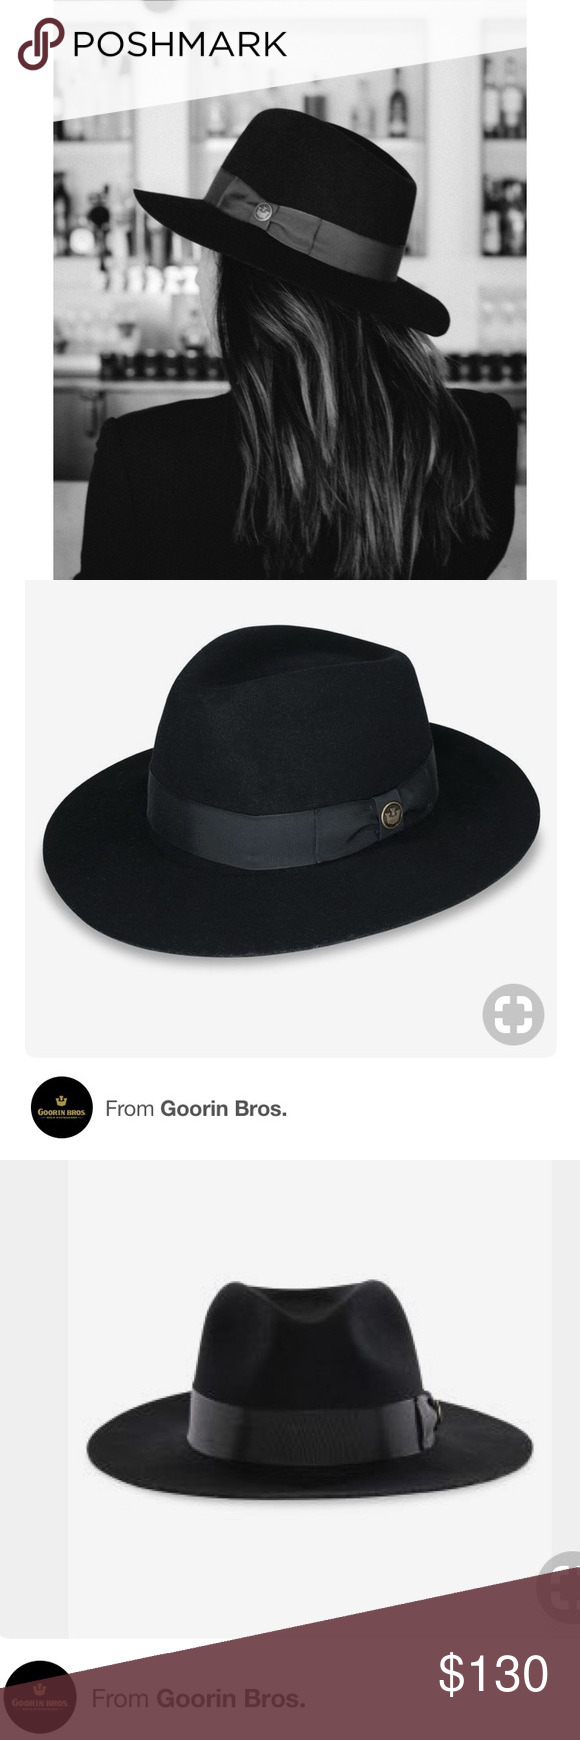 281889cca2b50 Spotted while shopping on Poshmark  Goorin Bros County Line Hat!  poshmark   fashion  shopping  style  Goorin Bros  Accessories